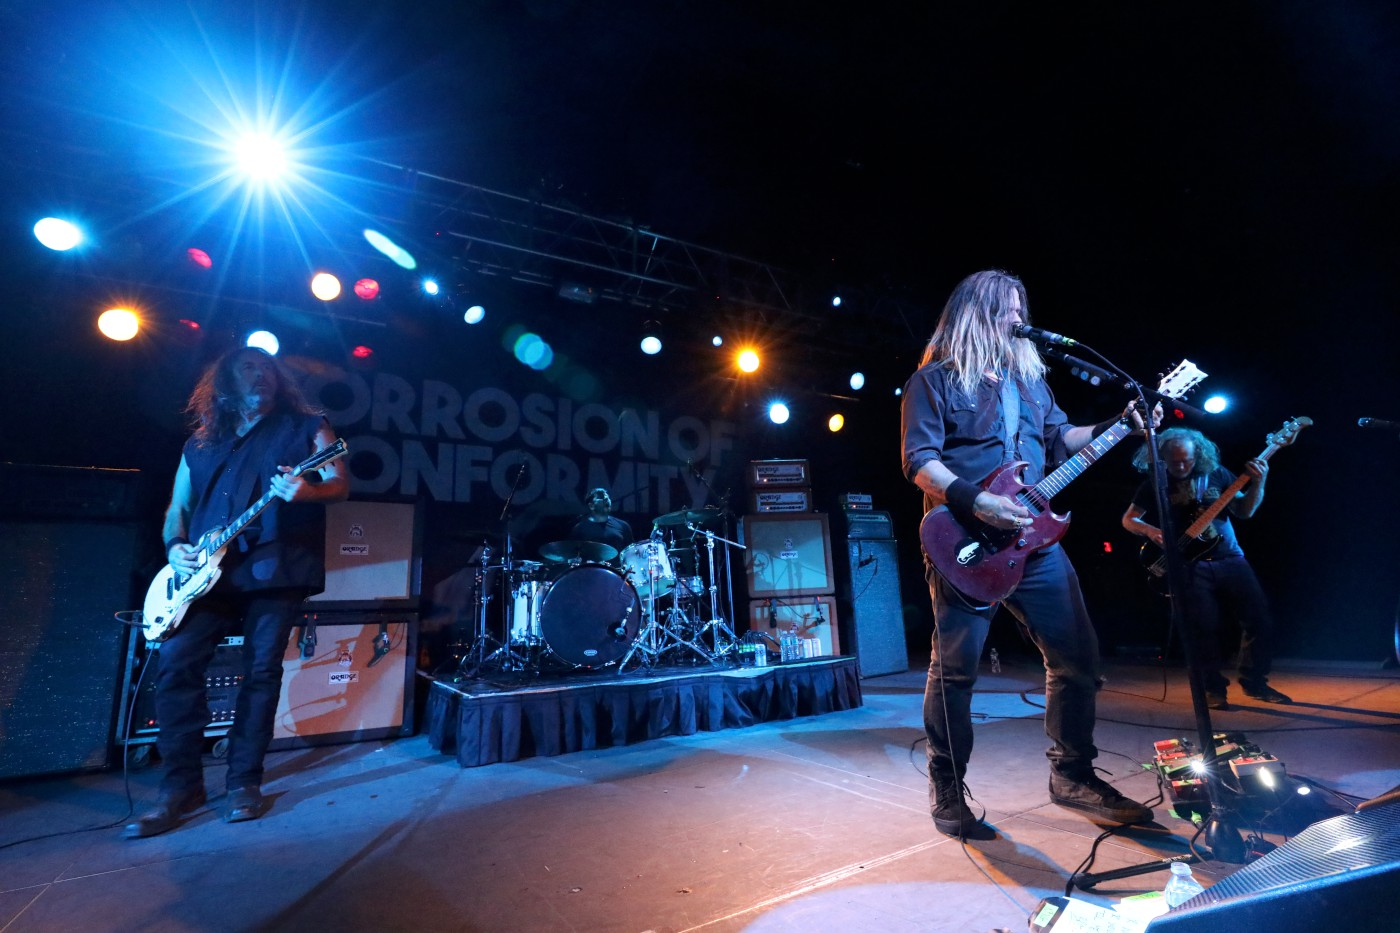 Corrosion of Conformity (Photo by JJ Koczan)